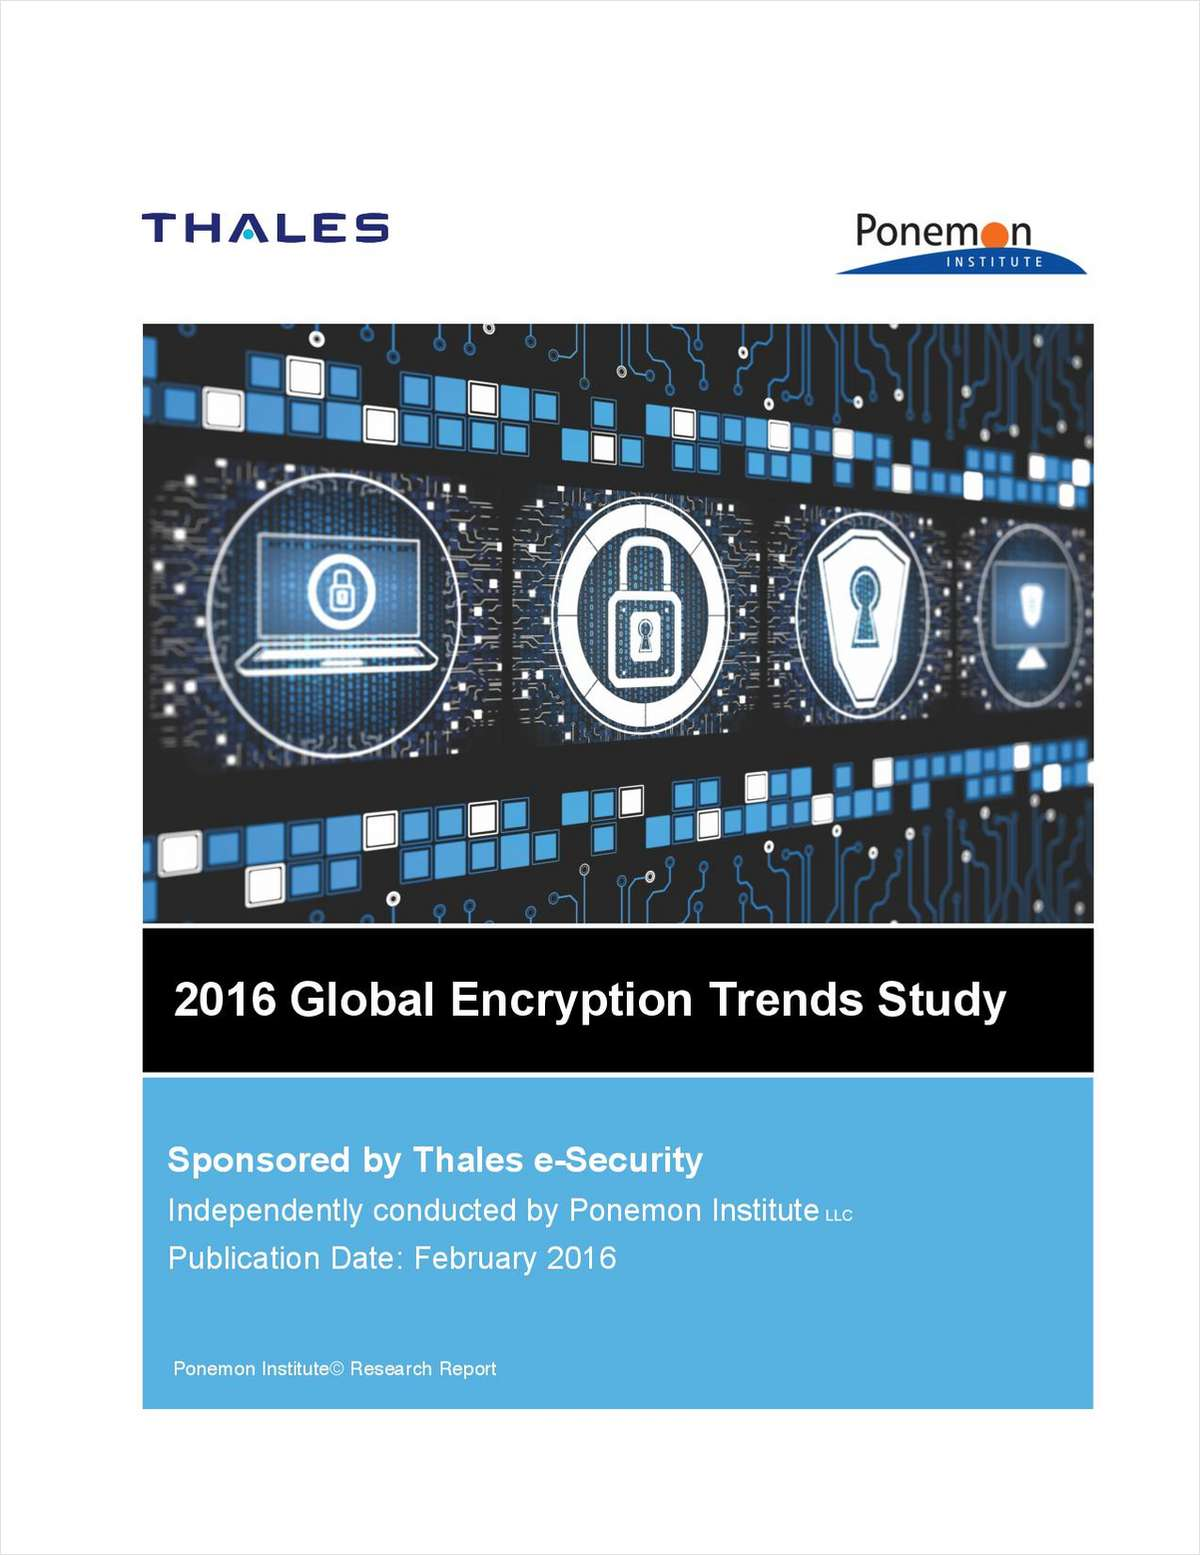 2016 Global Encryption Trends Study